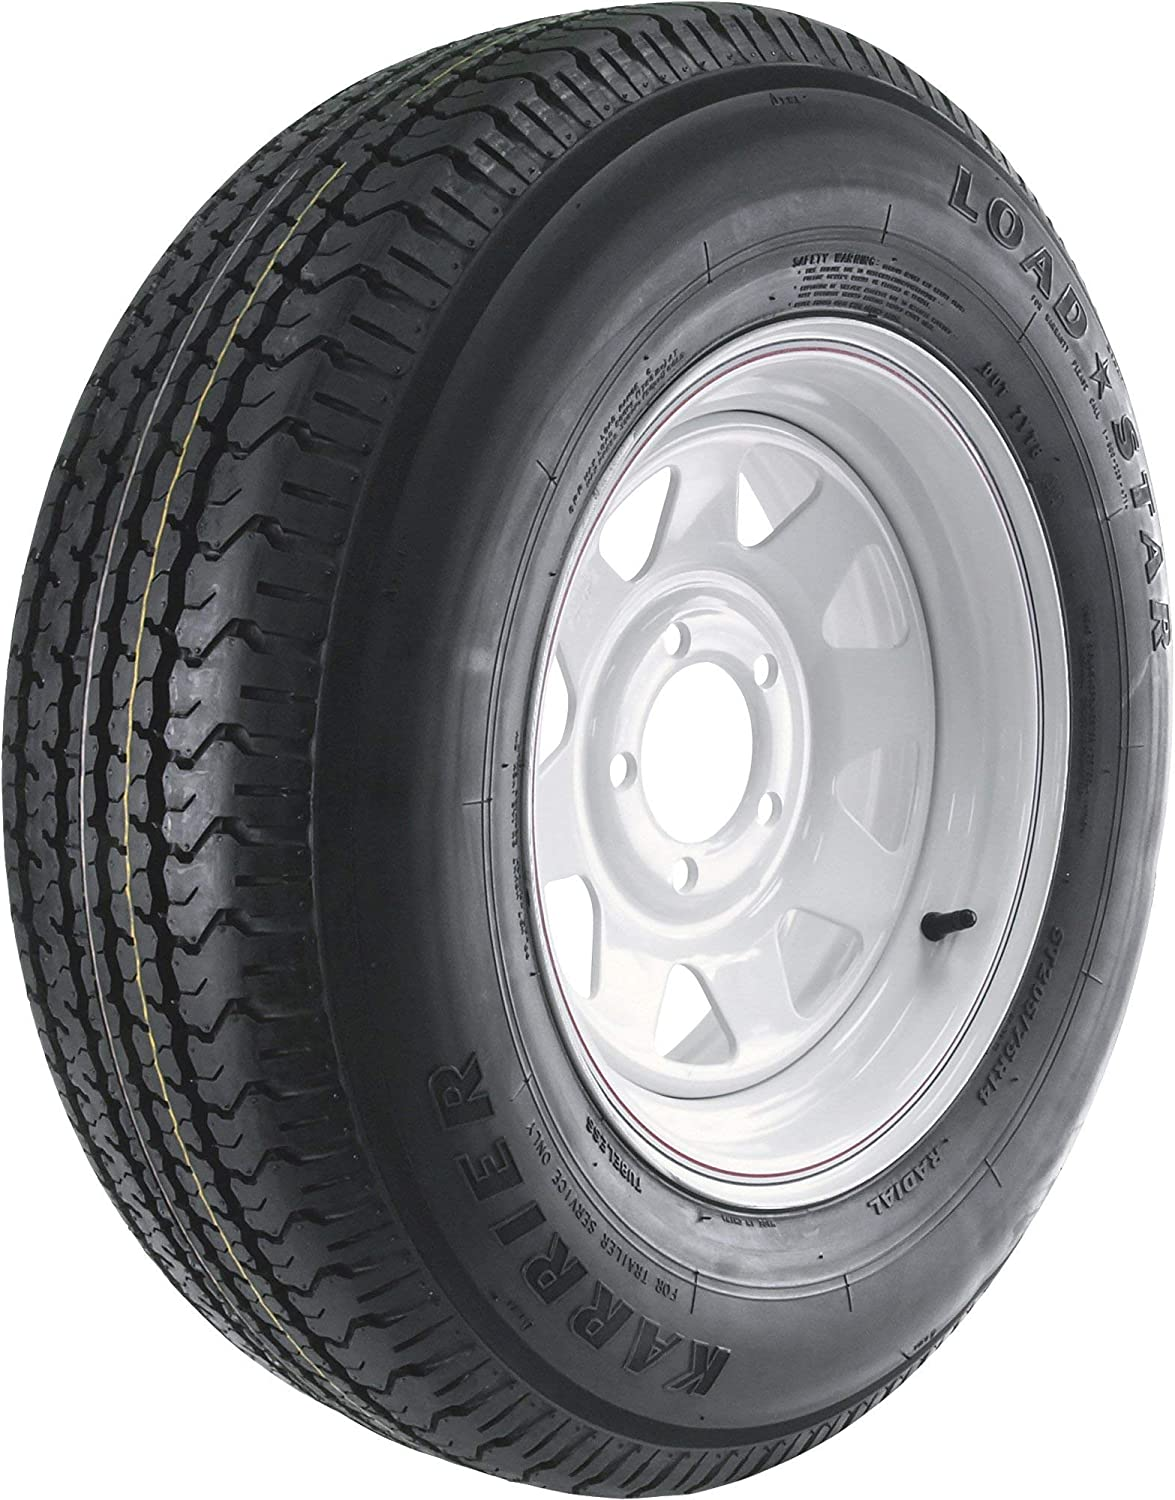 Martin Wheel Carrier Star 14in. Radial Trailer Tire and Wheel Assembly - ST205/75R-14, 5-Hole, Load Range C, Model Number DM205R4C-5CIN